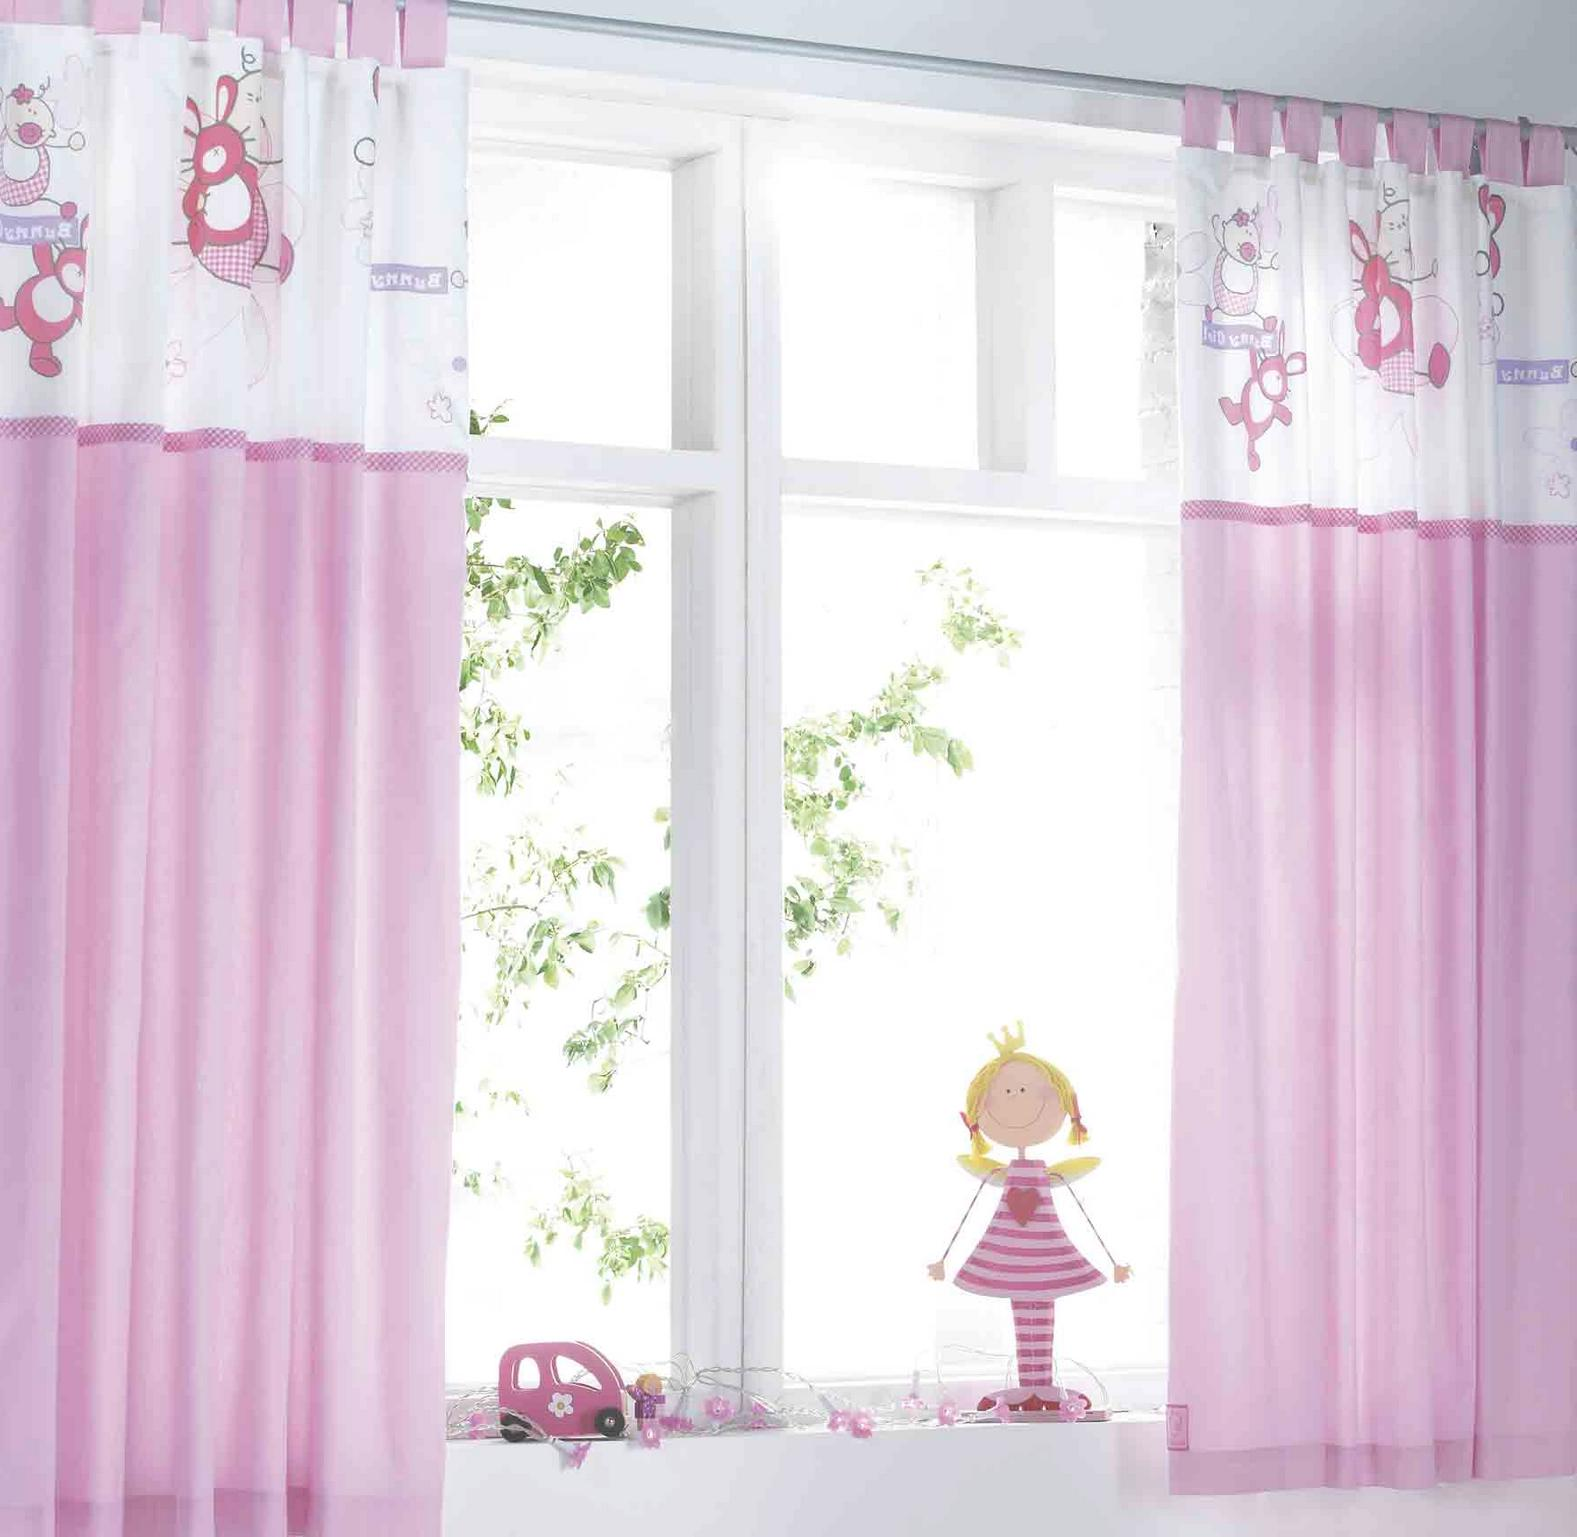 Cute window treatment kids bedroom curtains custom home for Kid curtains window treatments